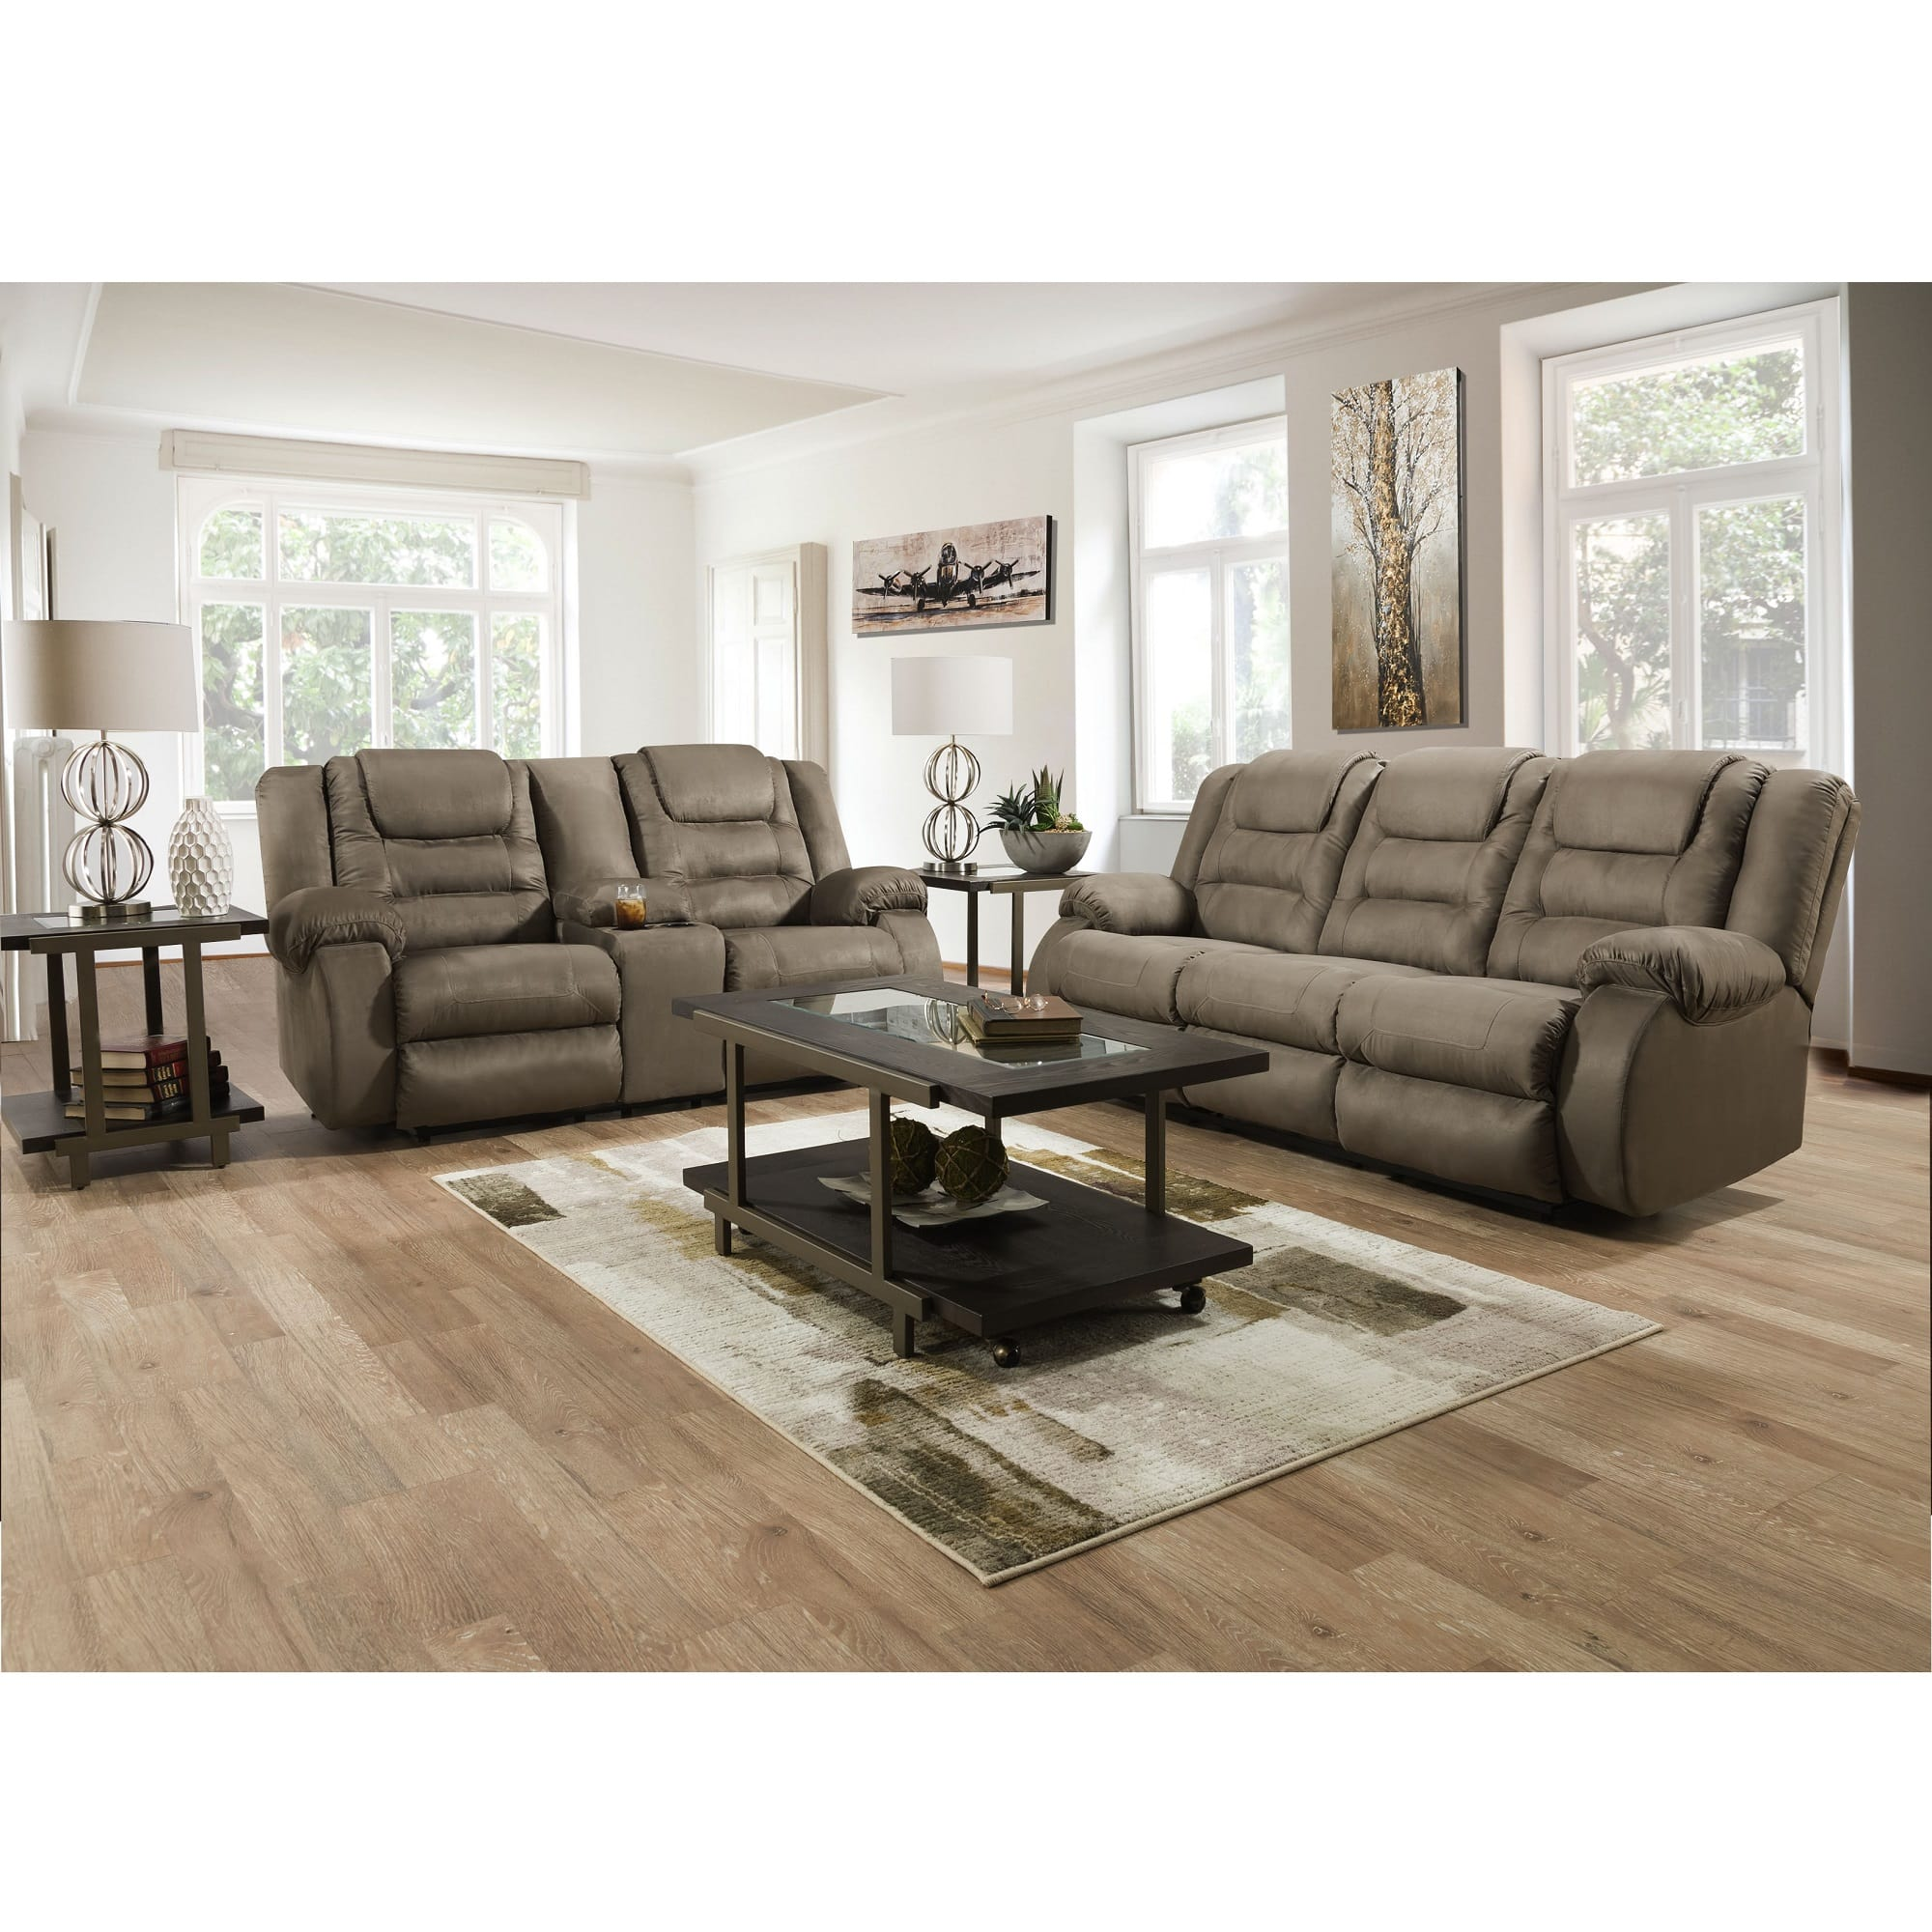 10-Piece Sheridan Reclining Living Room Collection